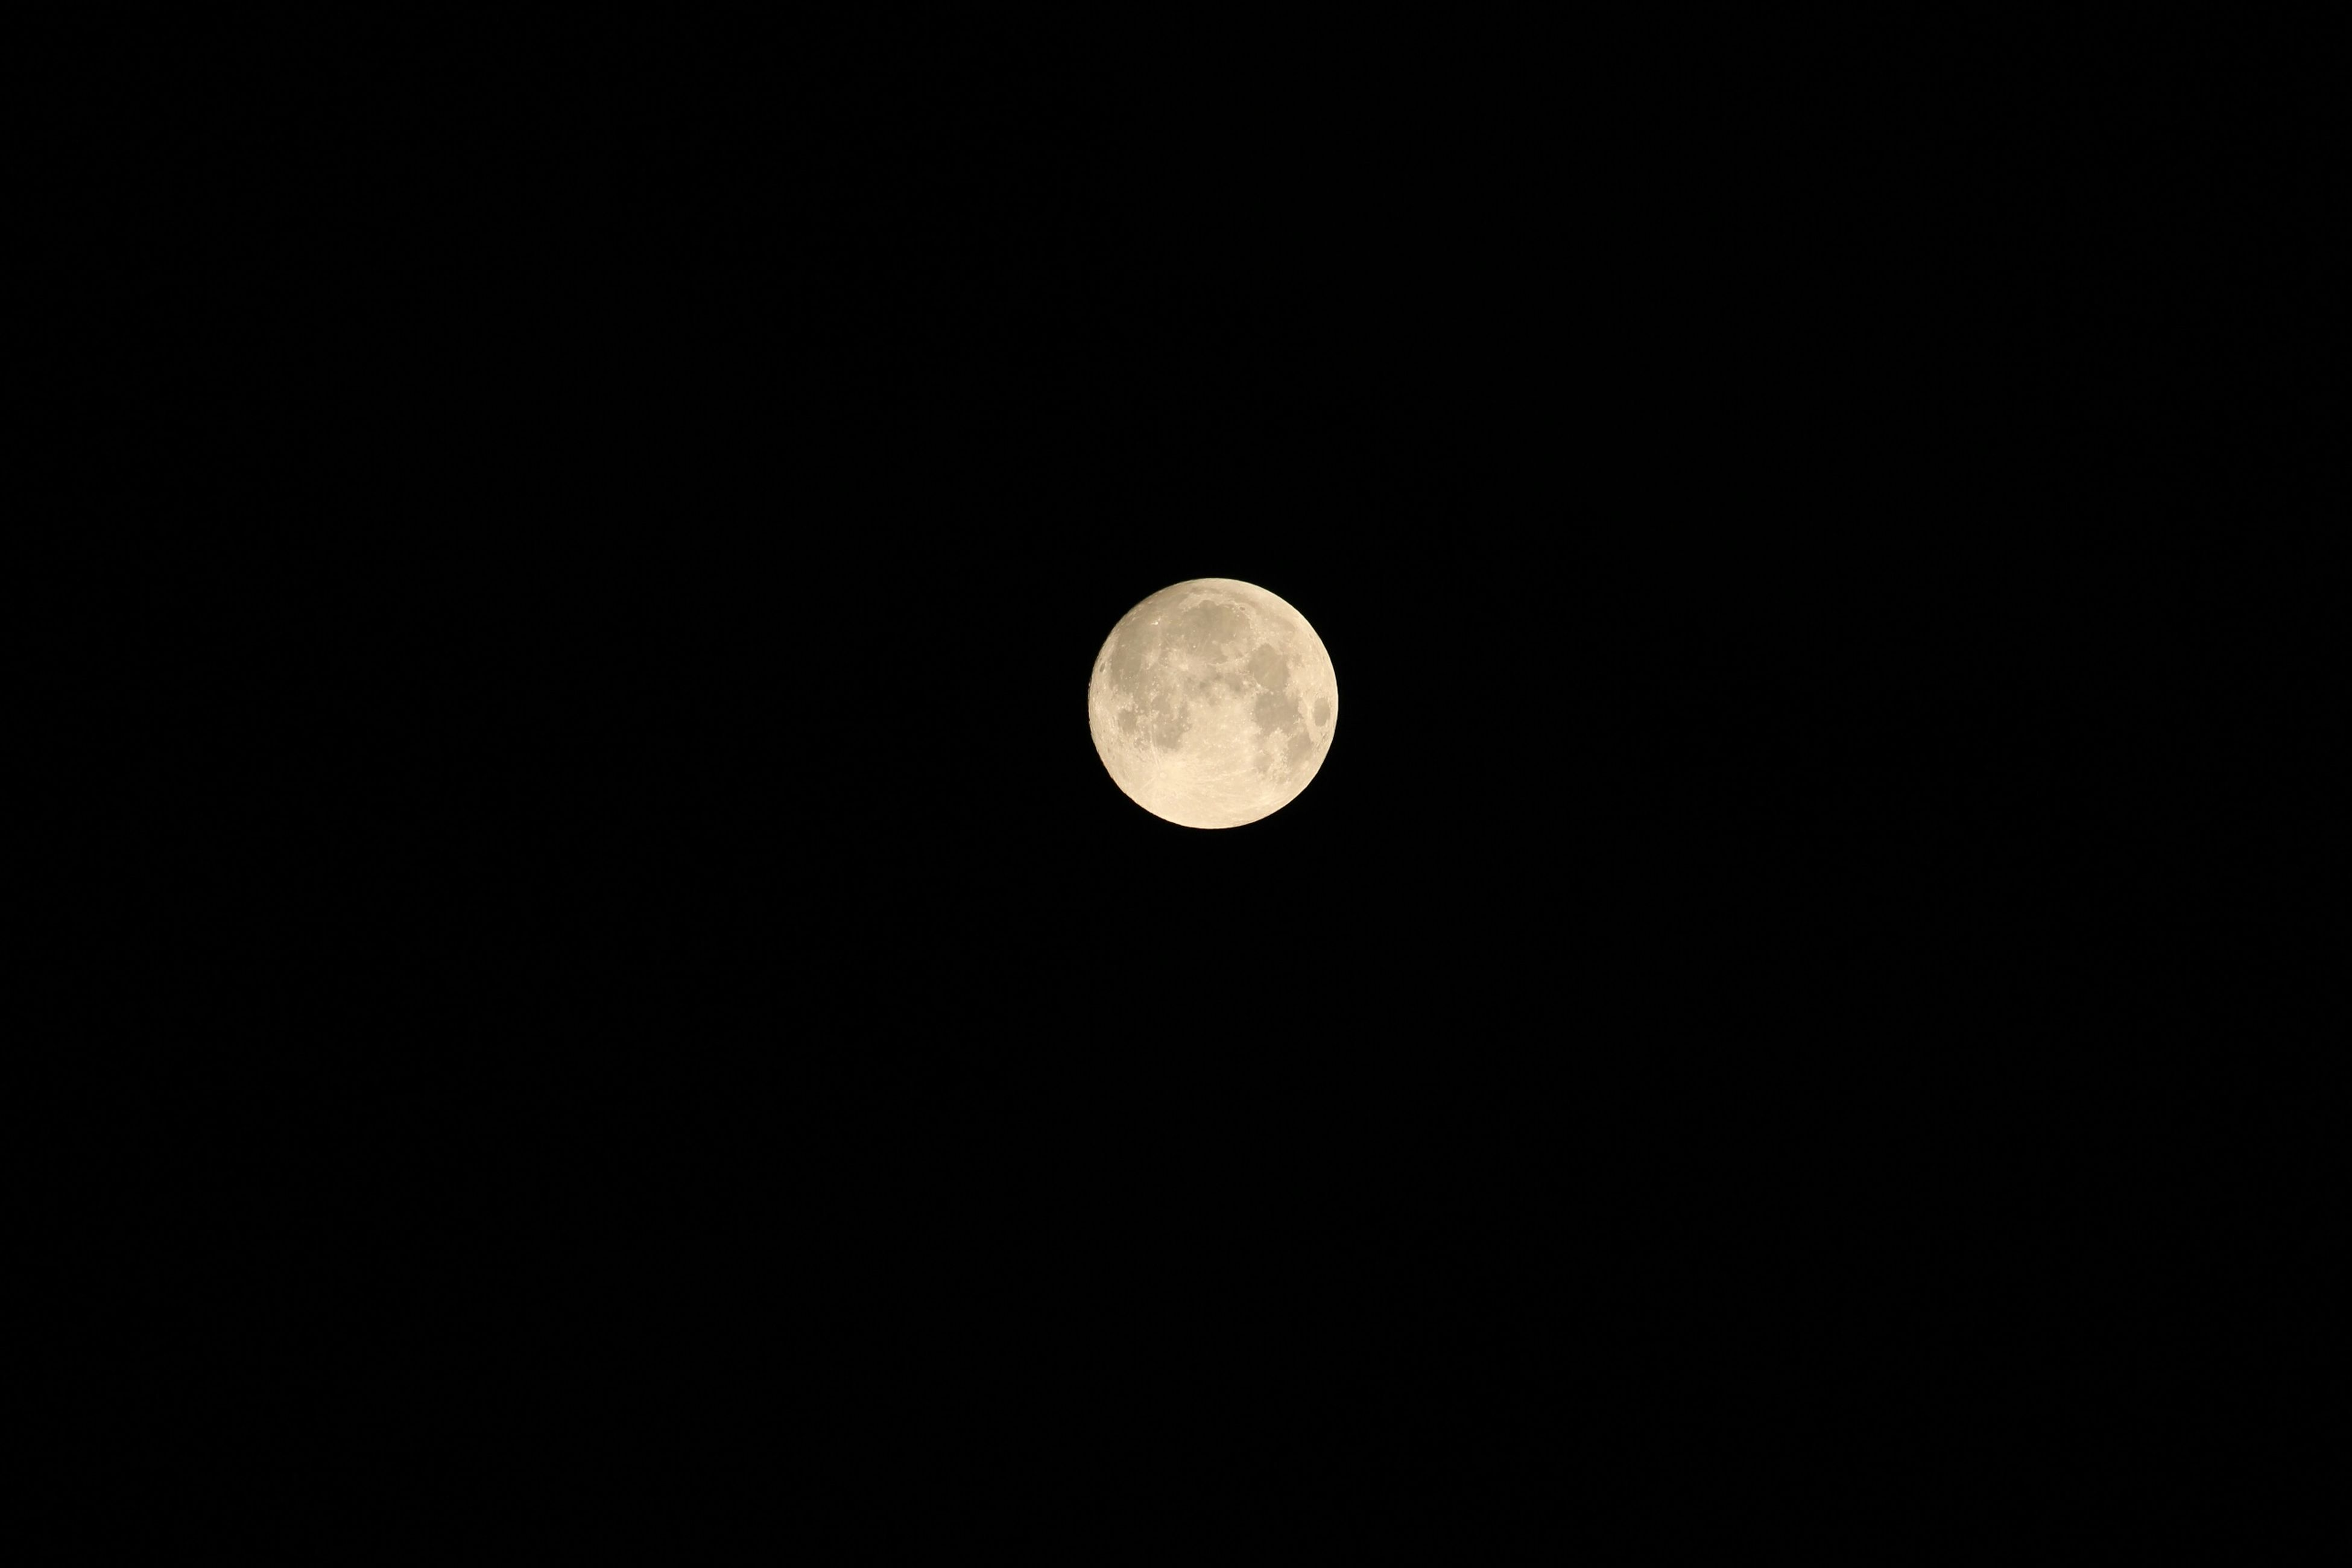 moon, astronomy, full moon, planetary moon, night, circle, copy space, moon surface, scenics, low angle view, beauty in nature, tranquil scene, tranquility, clear sky, space exploration, discovery, sphere, nature, sky, dark